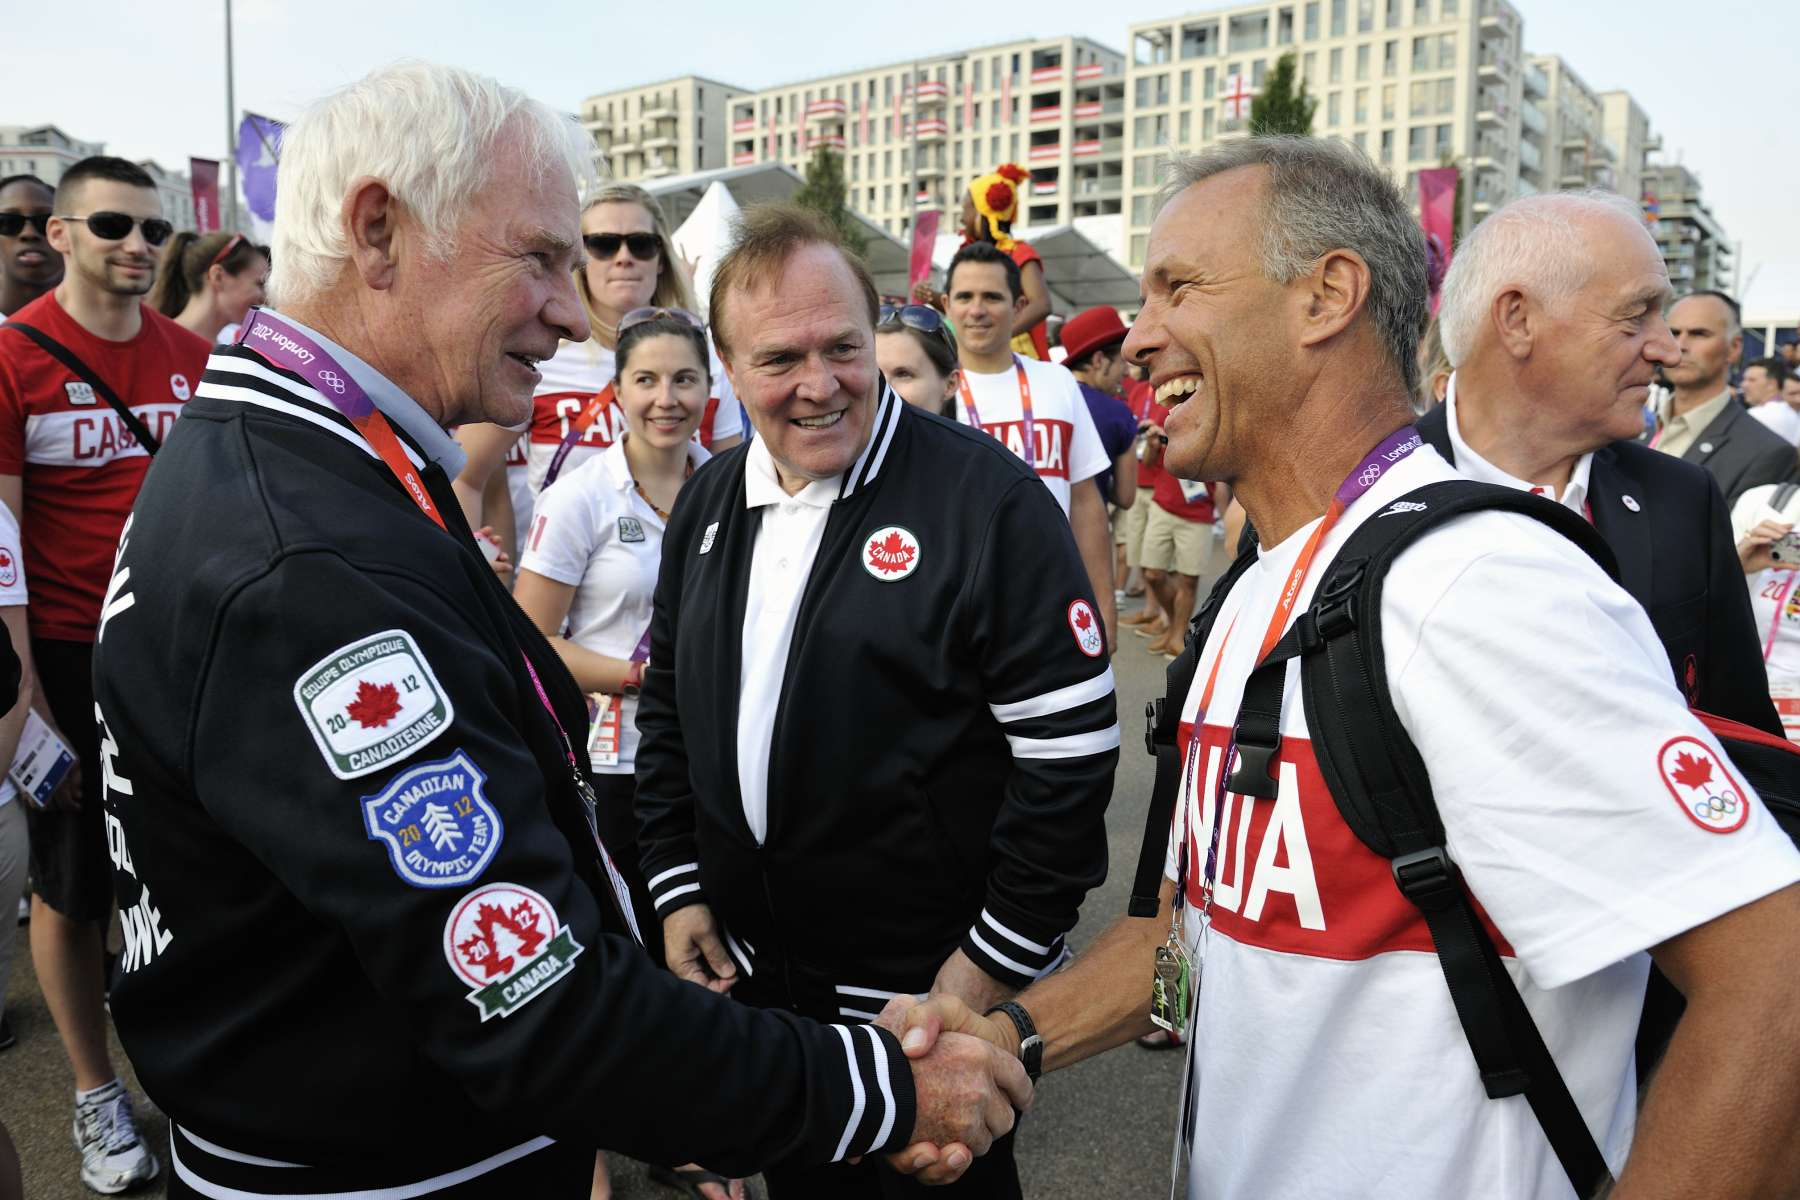 During the Canadian Olympic Team Welcome Ceremony, the Governor General met with CEO and National Coach of Swimming Canada Pierre Lafontaine.